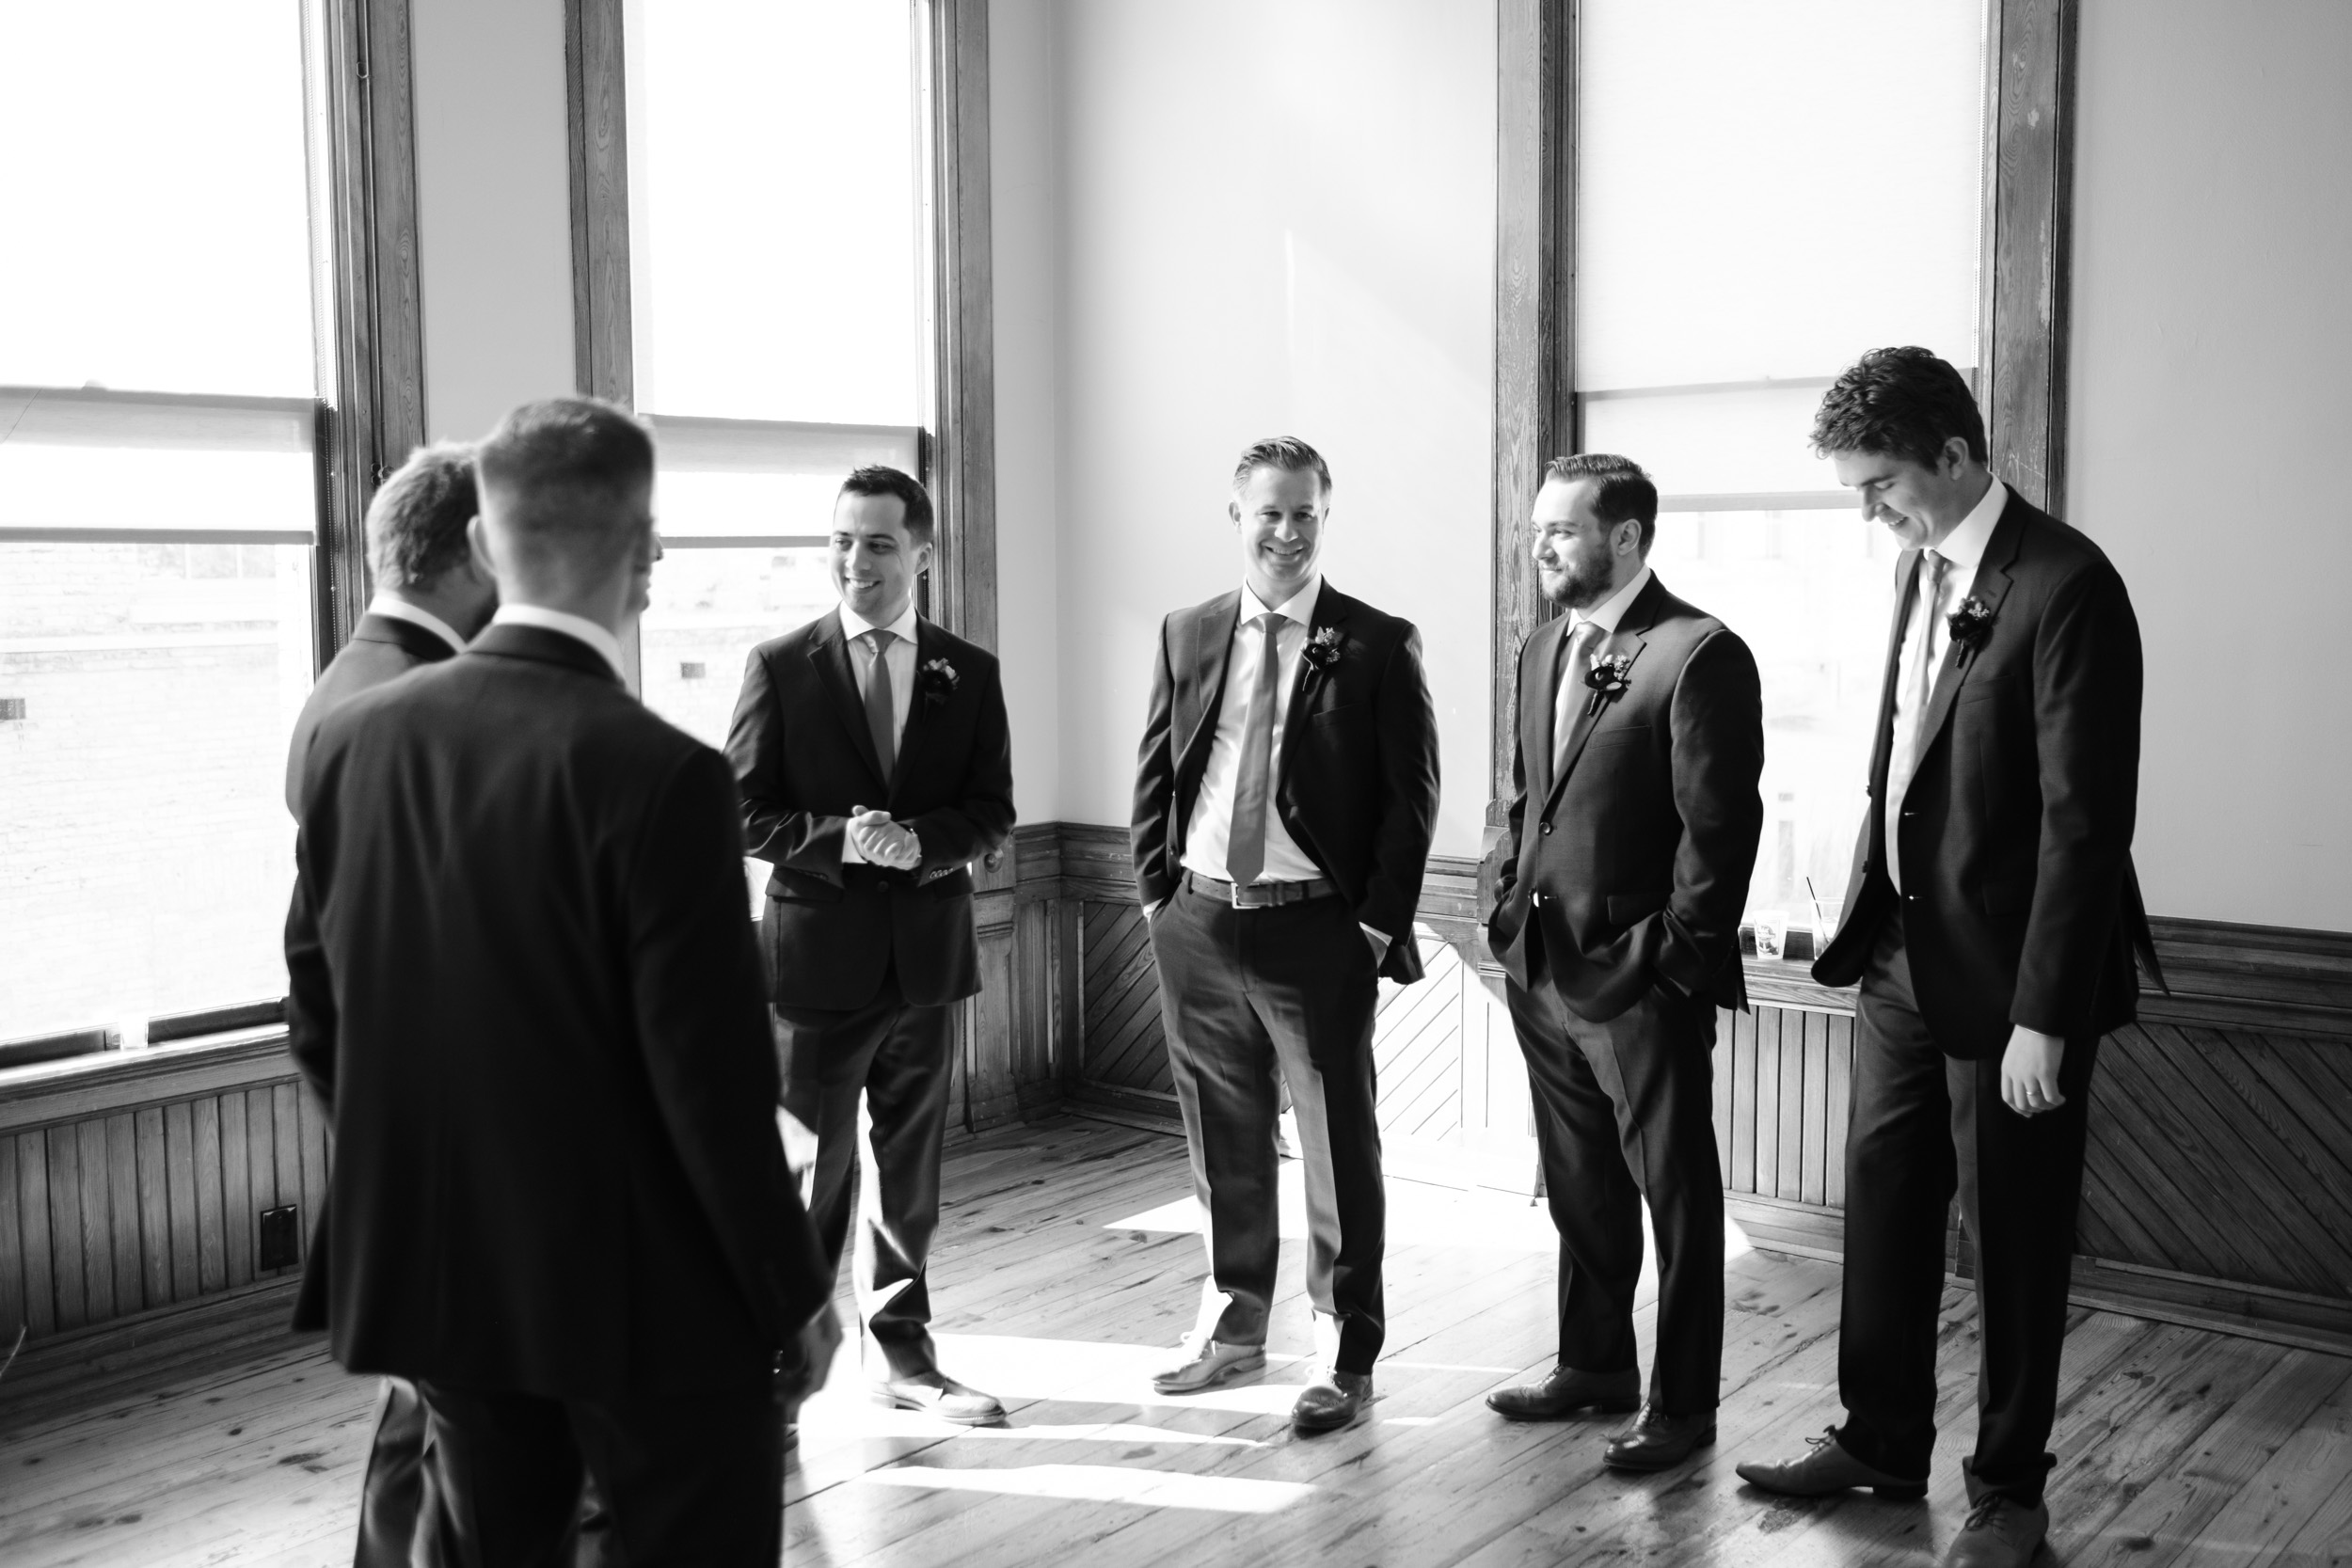 Groom and groomsman candid relaxing before ceremony by rockford wedding photographer b. adams photography at Pabst best place.